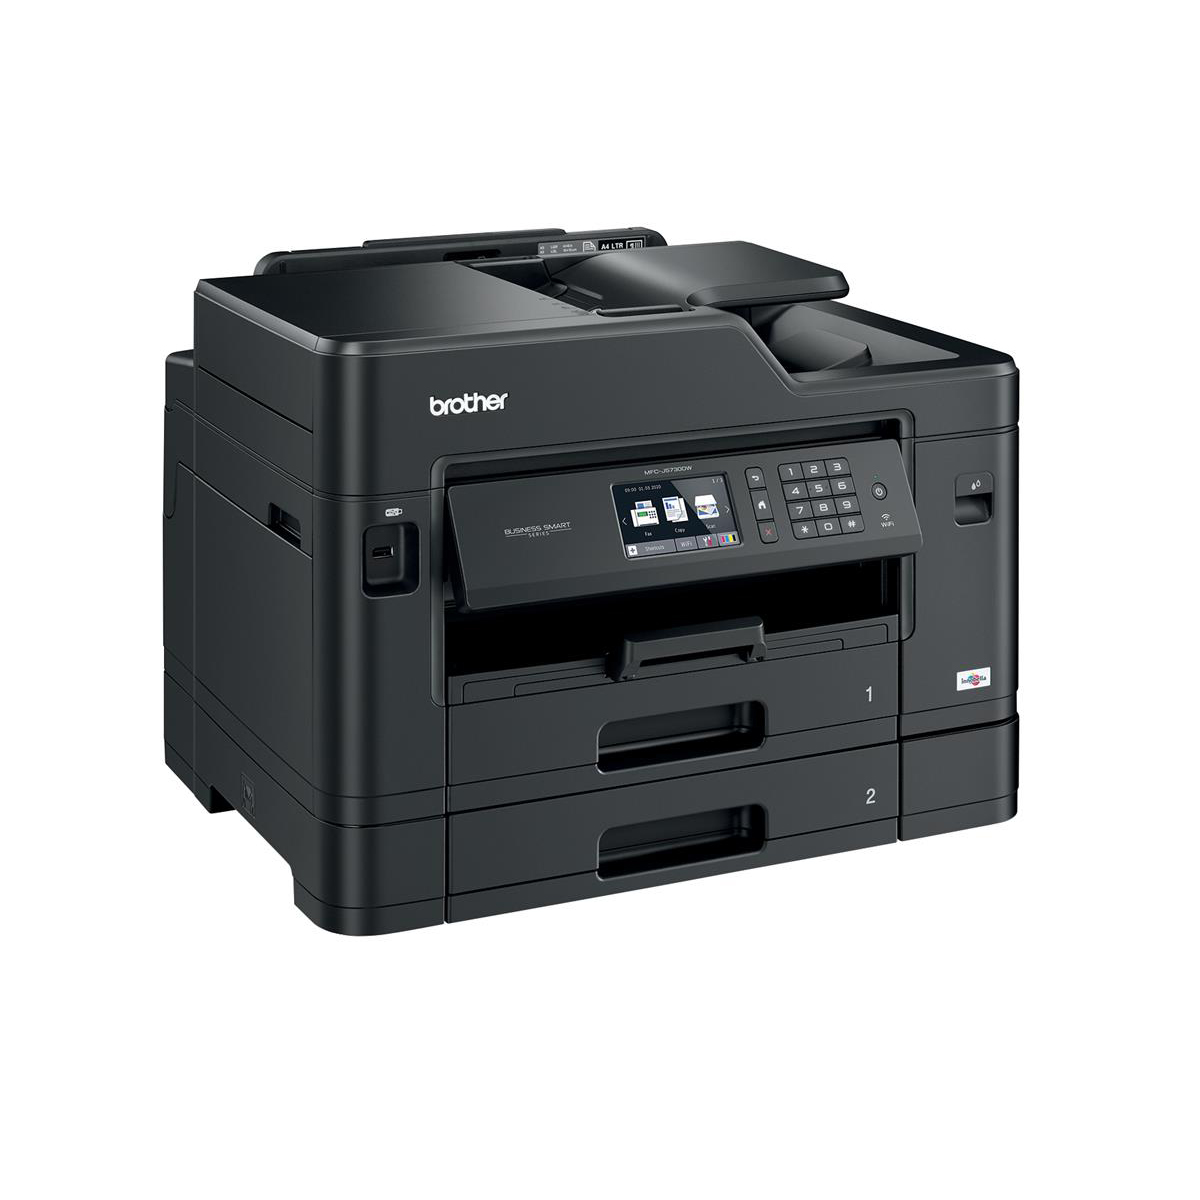 Brother Colour Multifunction Inkjet A3 Printer Ref MFCJ5730DWZU1